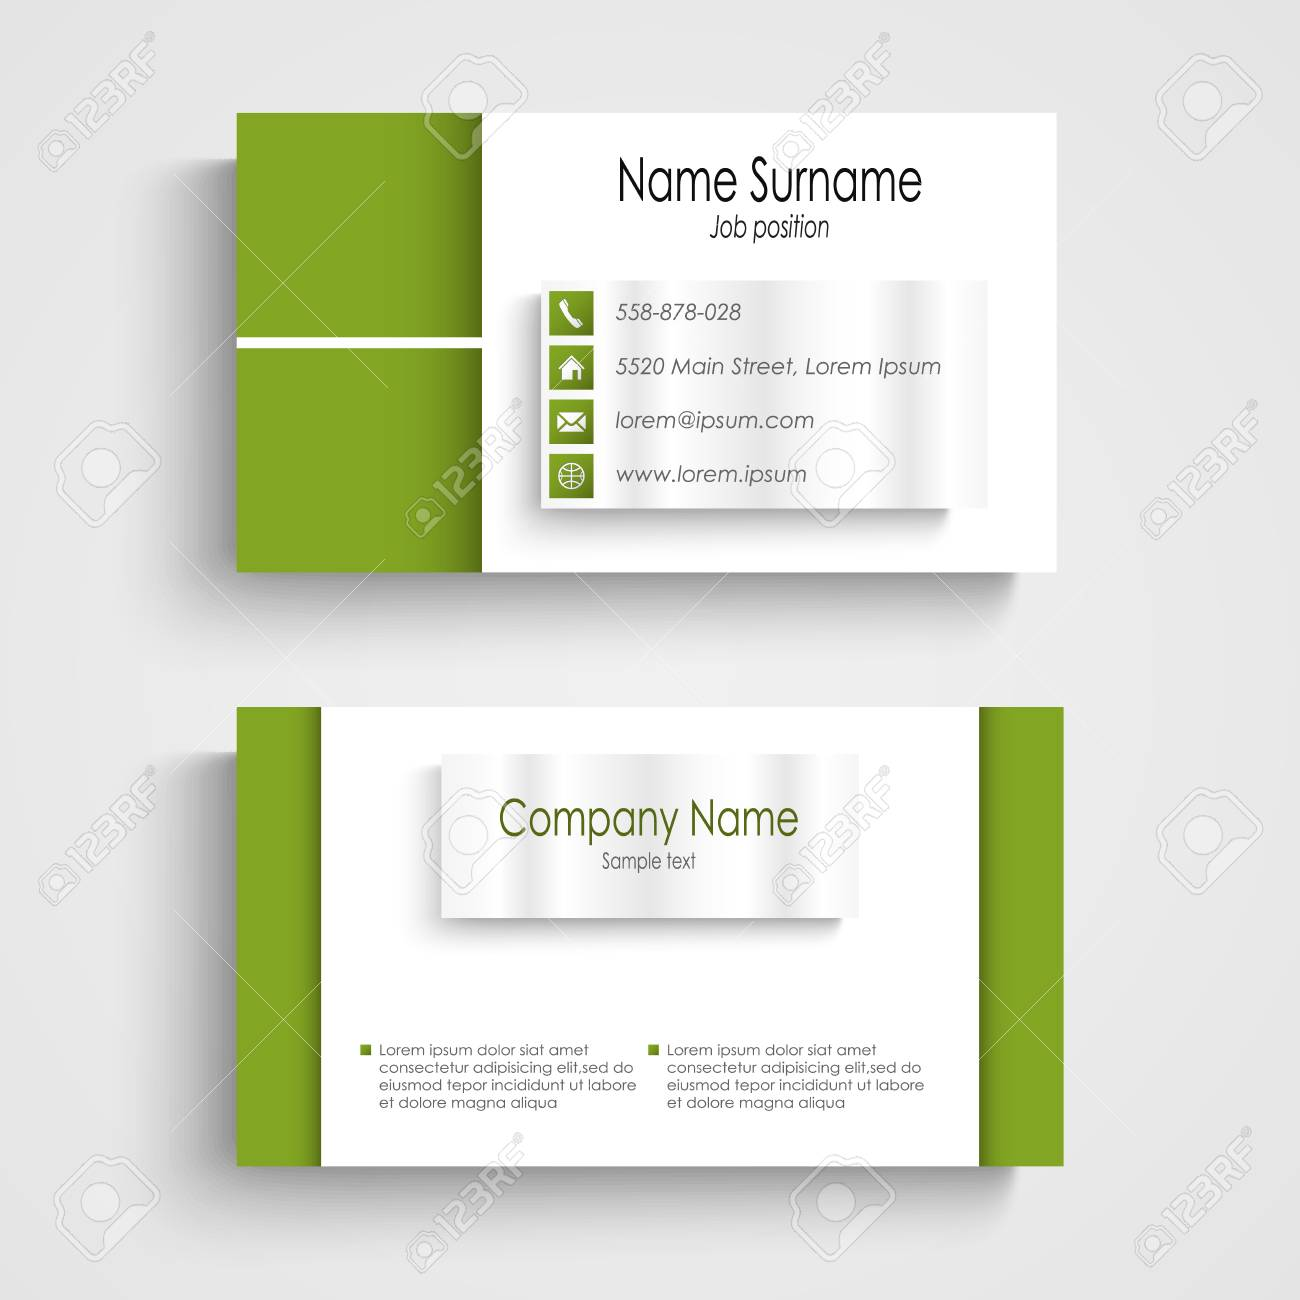 Modern green light business card template vector eps 10 royalty free modern green light business card template vector eps 10 stock vector 25298703 flashek